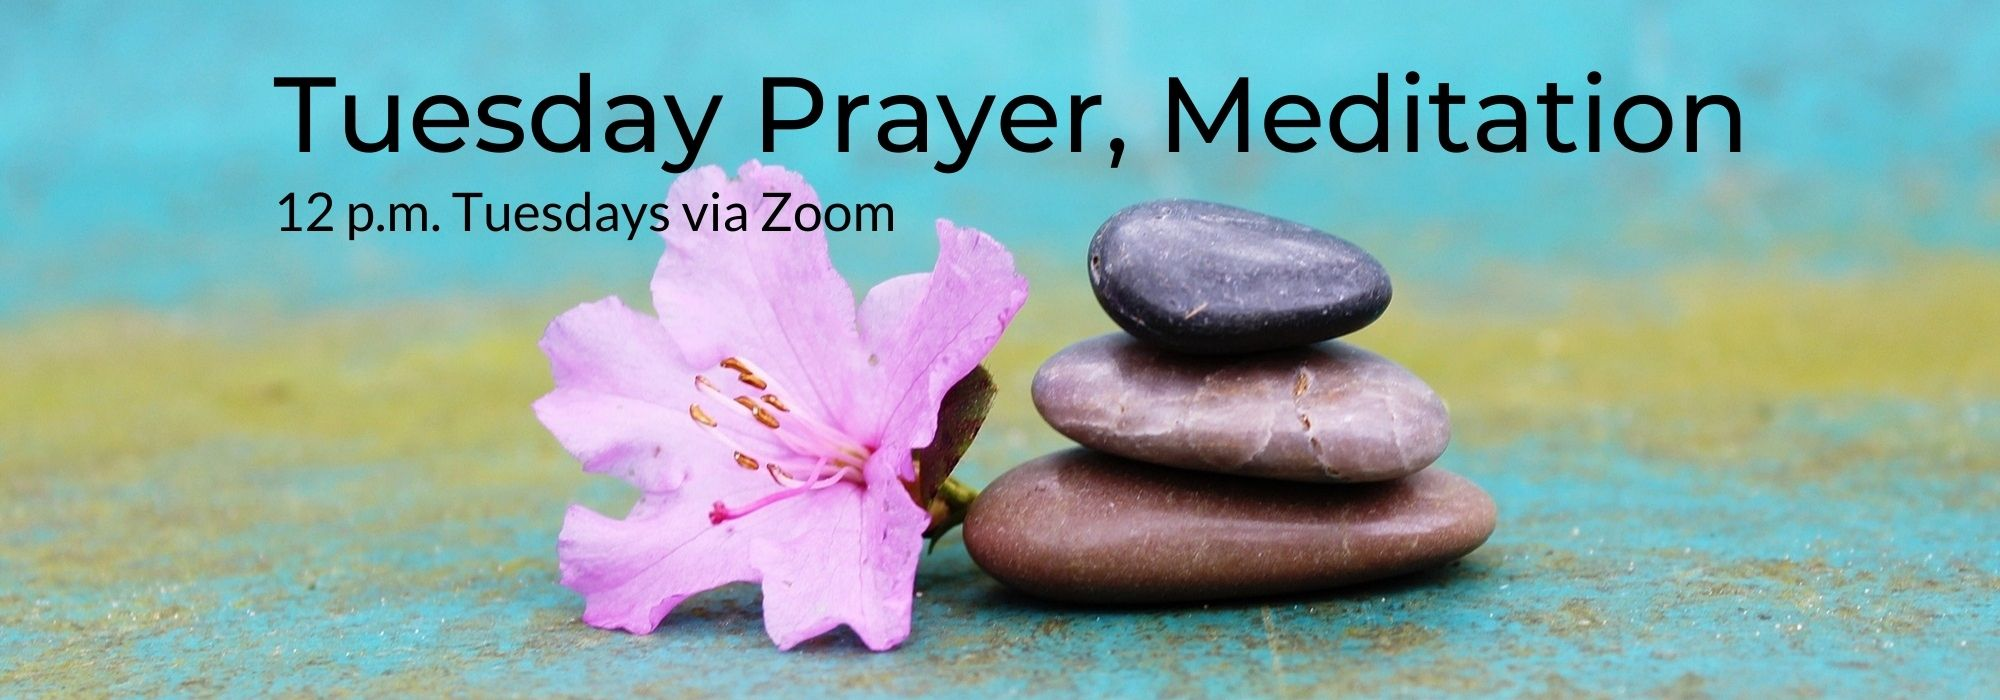 Tuesday Prayer, Meditation, 12 pm, Tuesdays via Zoom